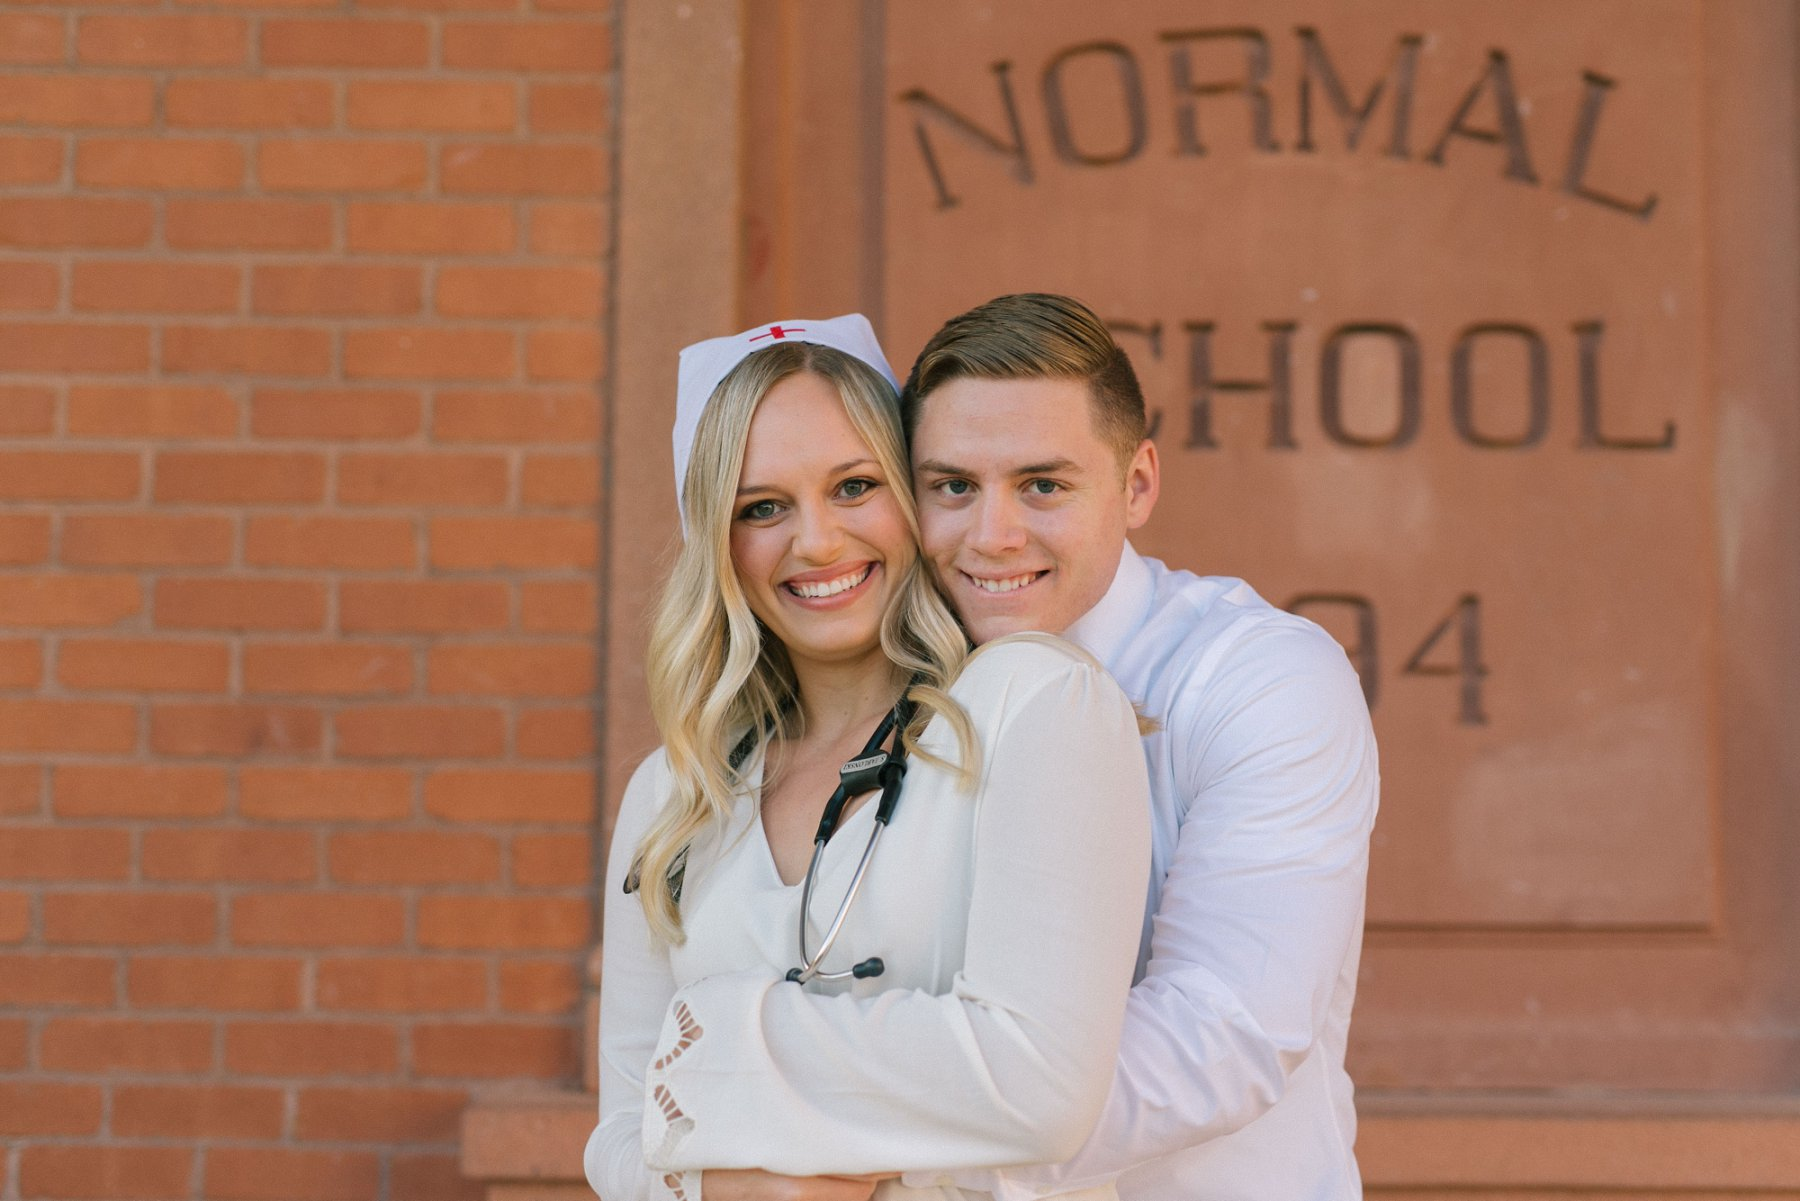 Old Main ASU Tempe nurse engagement photos